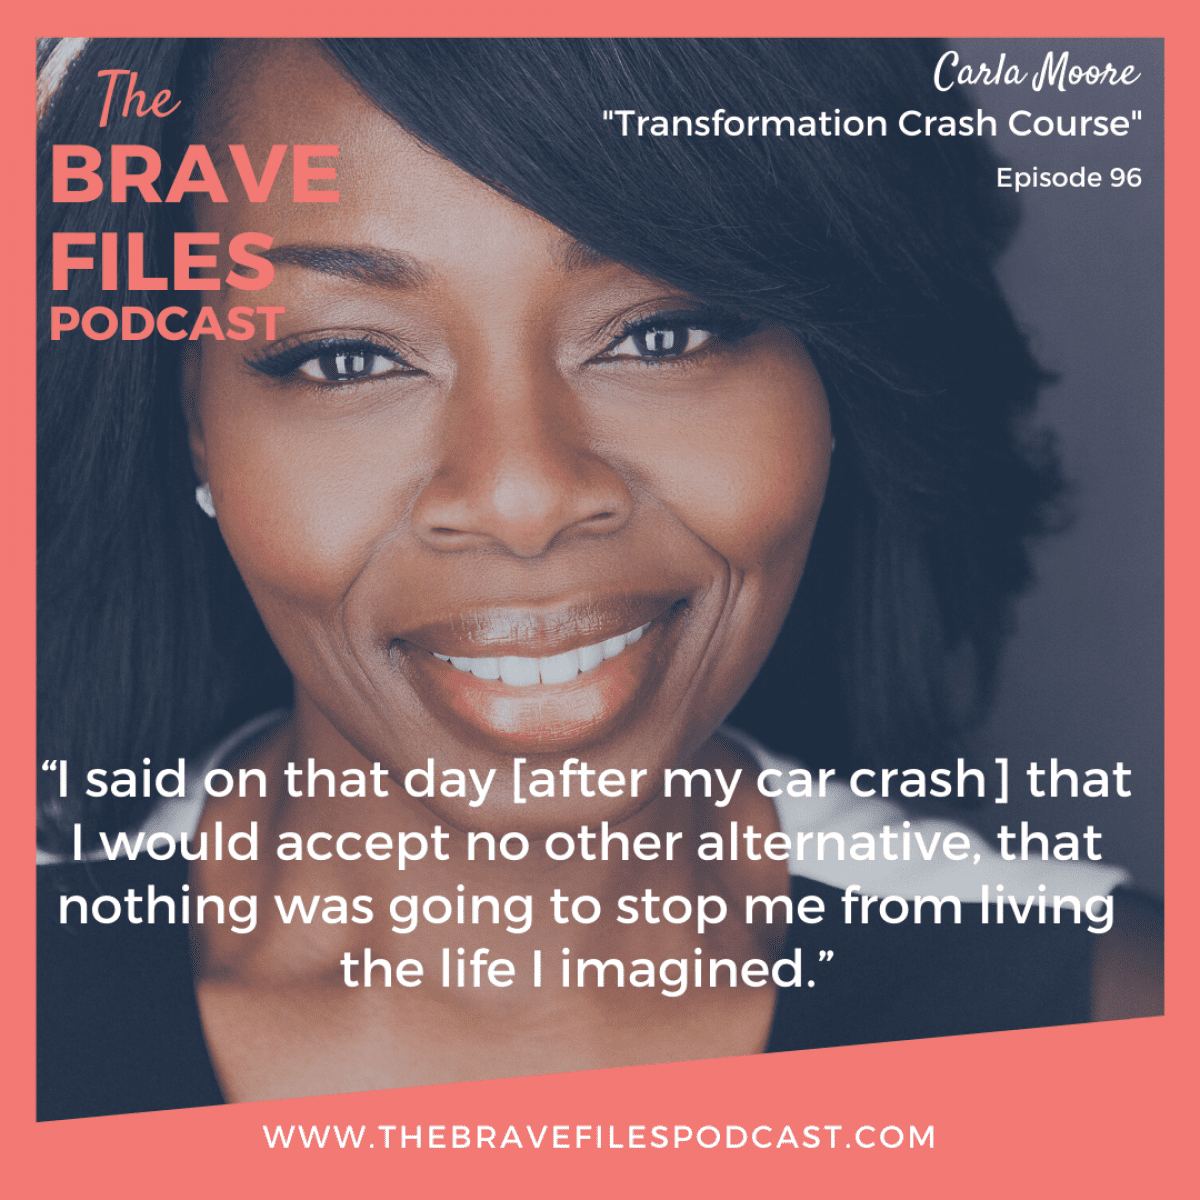 Carla Moore joins Heather Vickery on The Brave Files to talk about her total life transformation after a near deadly car crash.